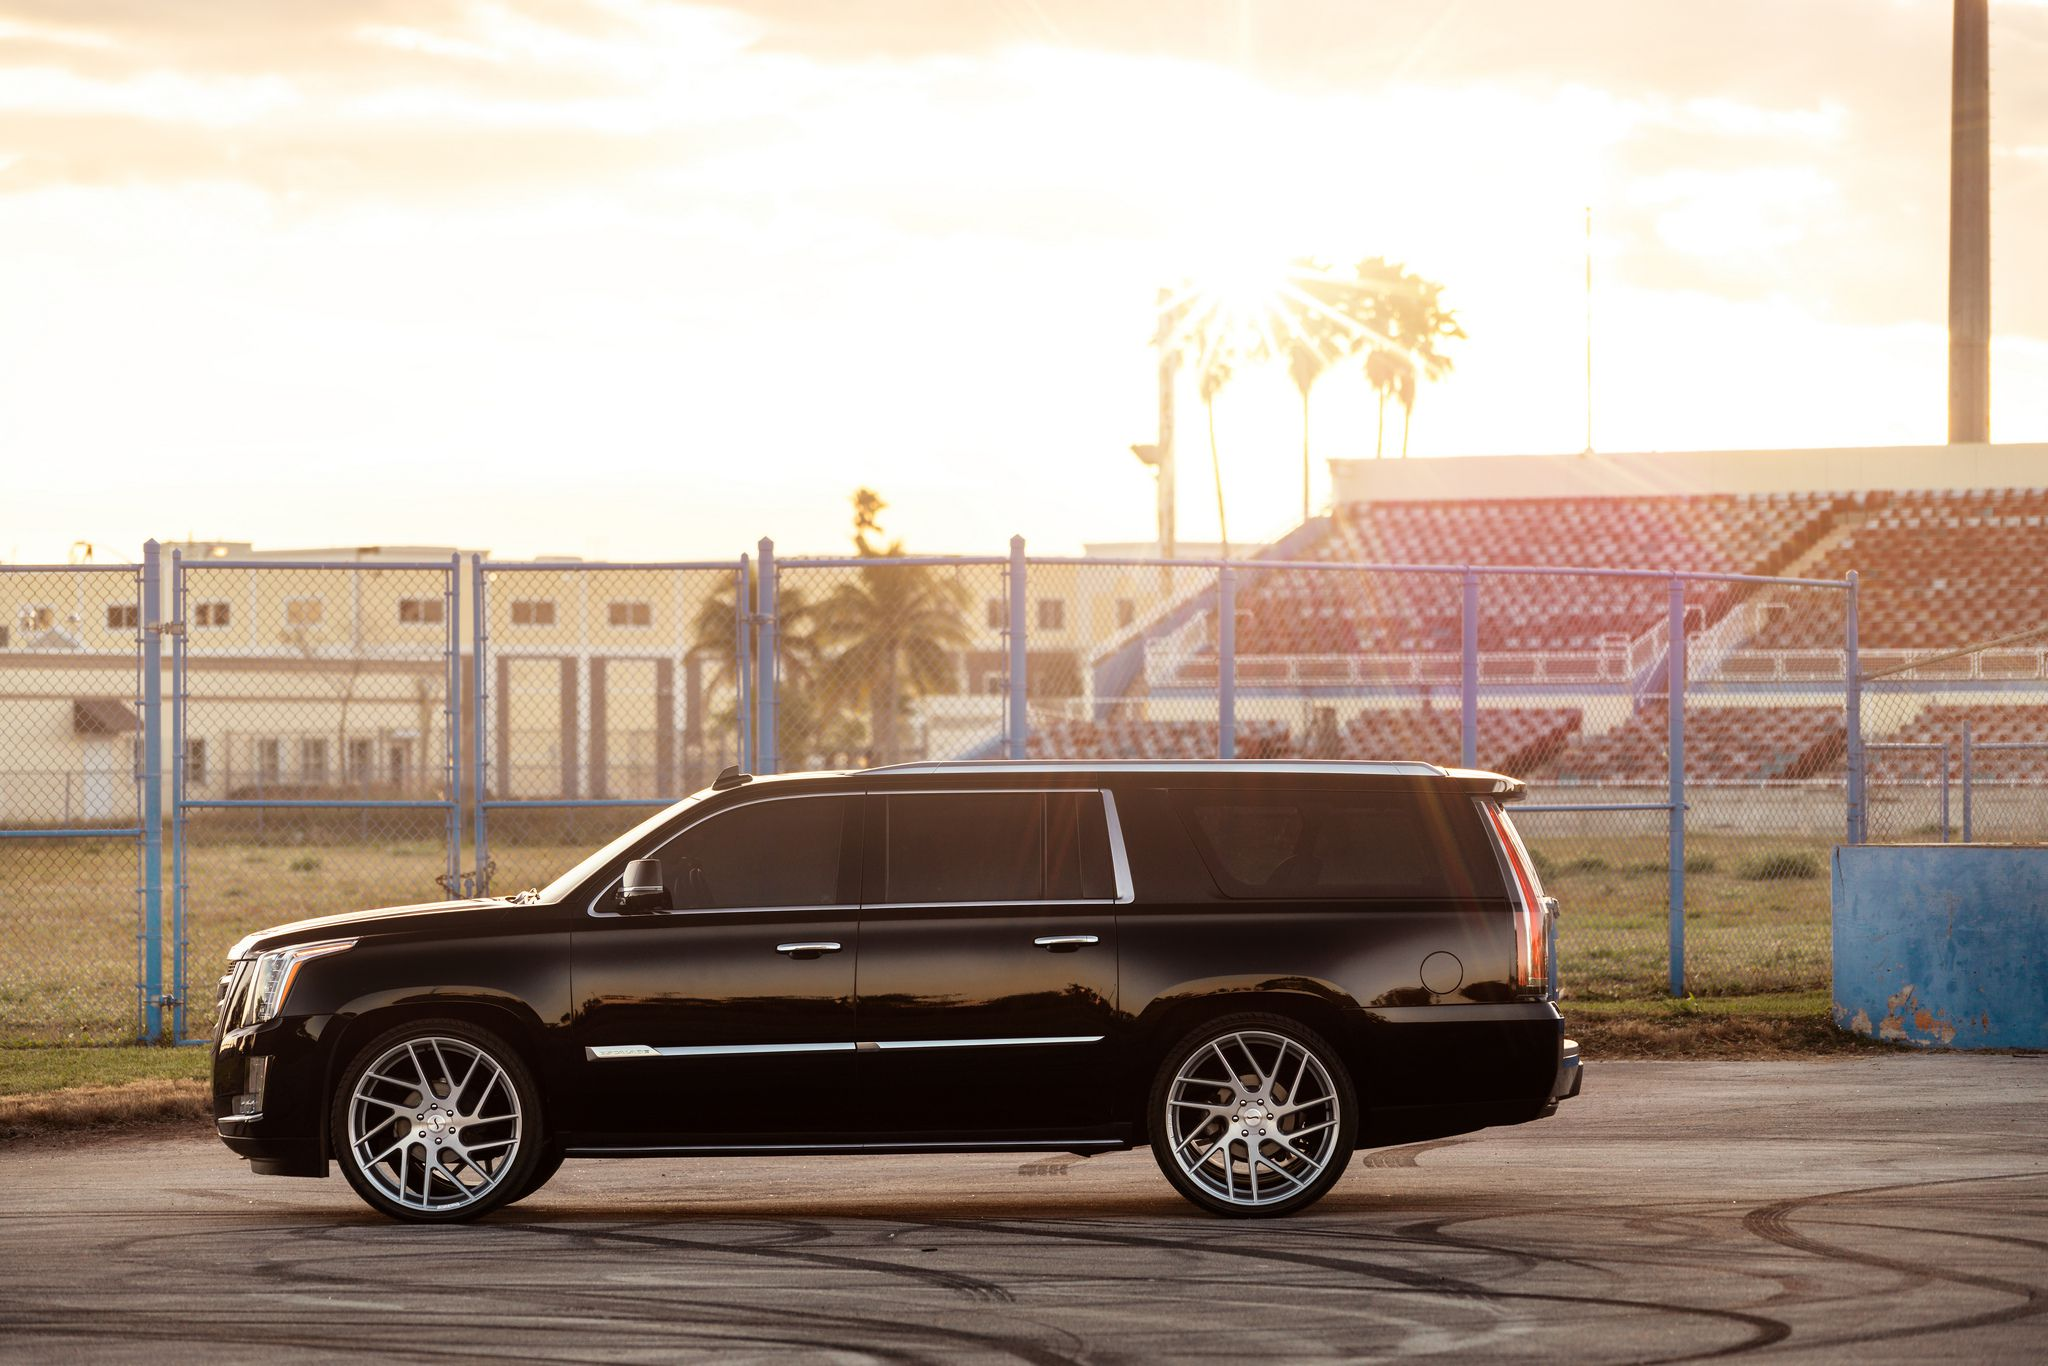 Cadillac Escalade - side view